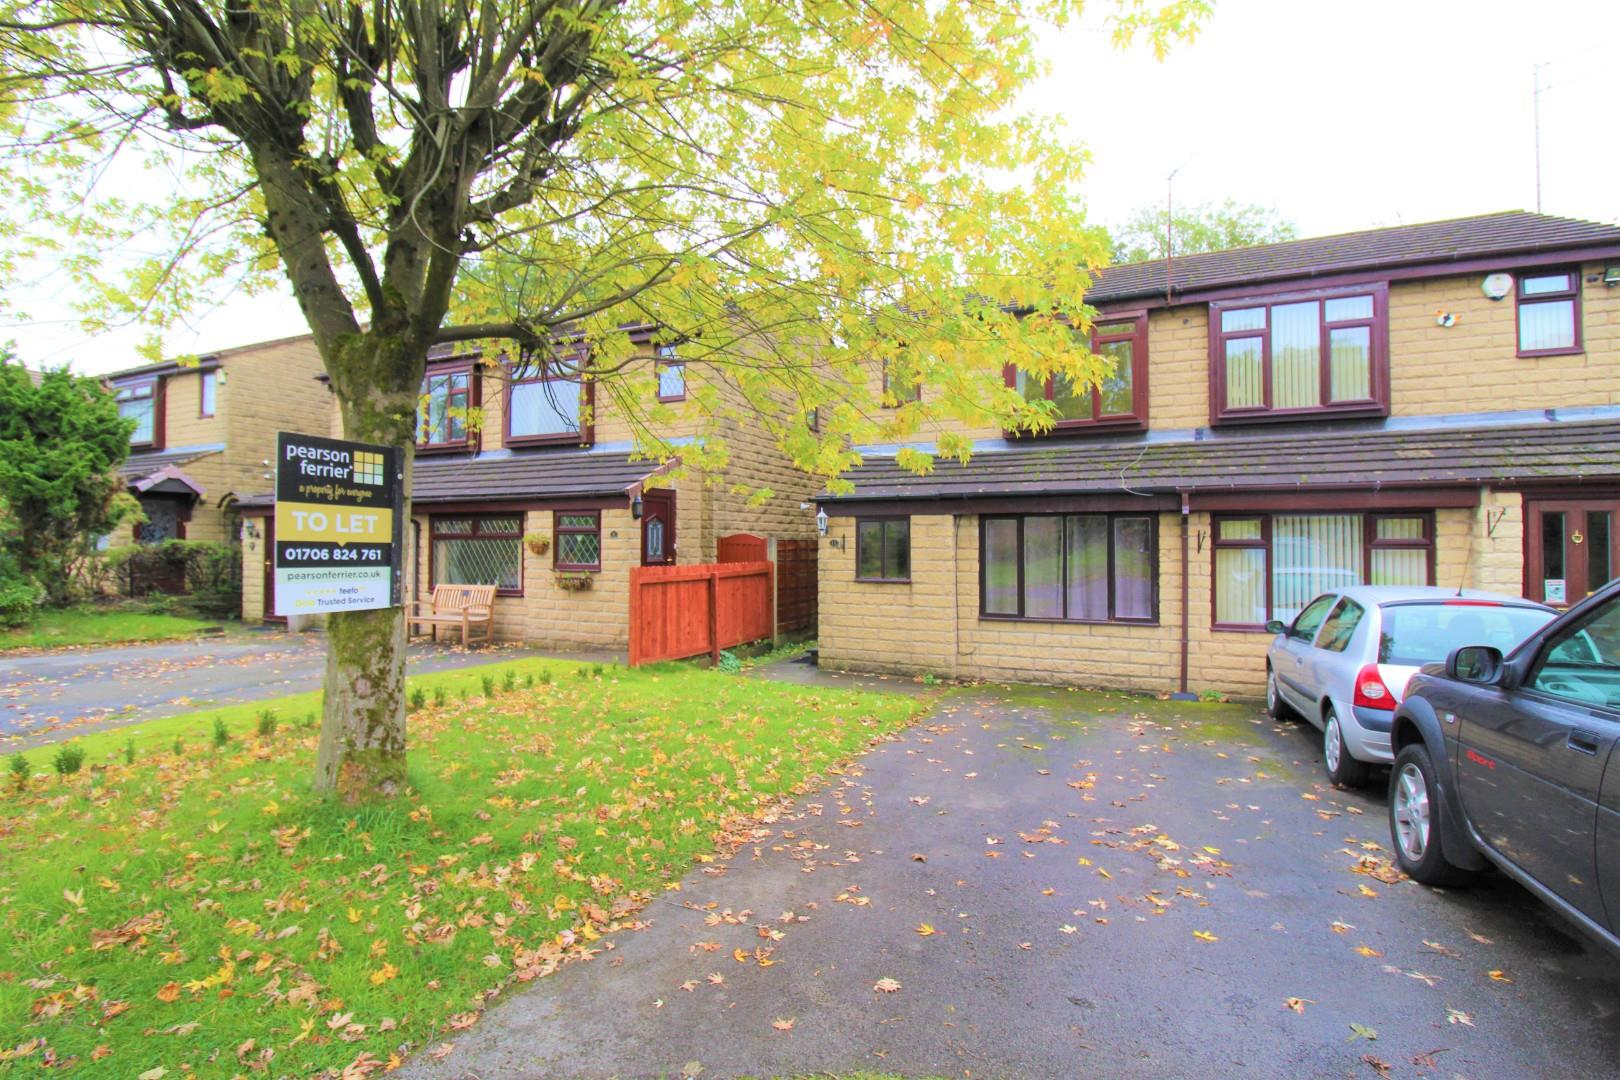 Ascot Close, Rochdale